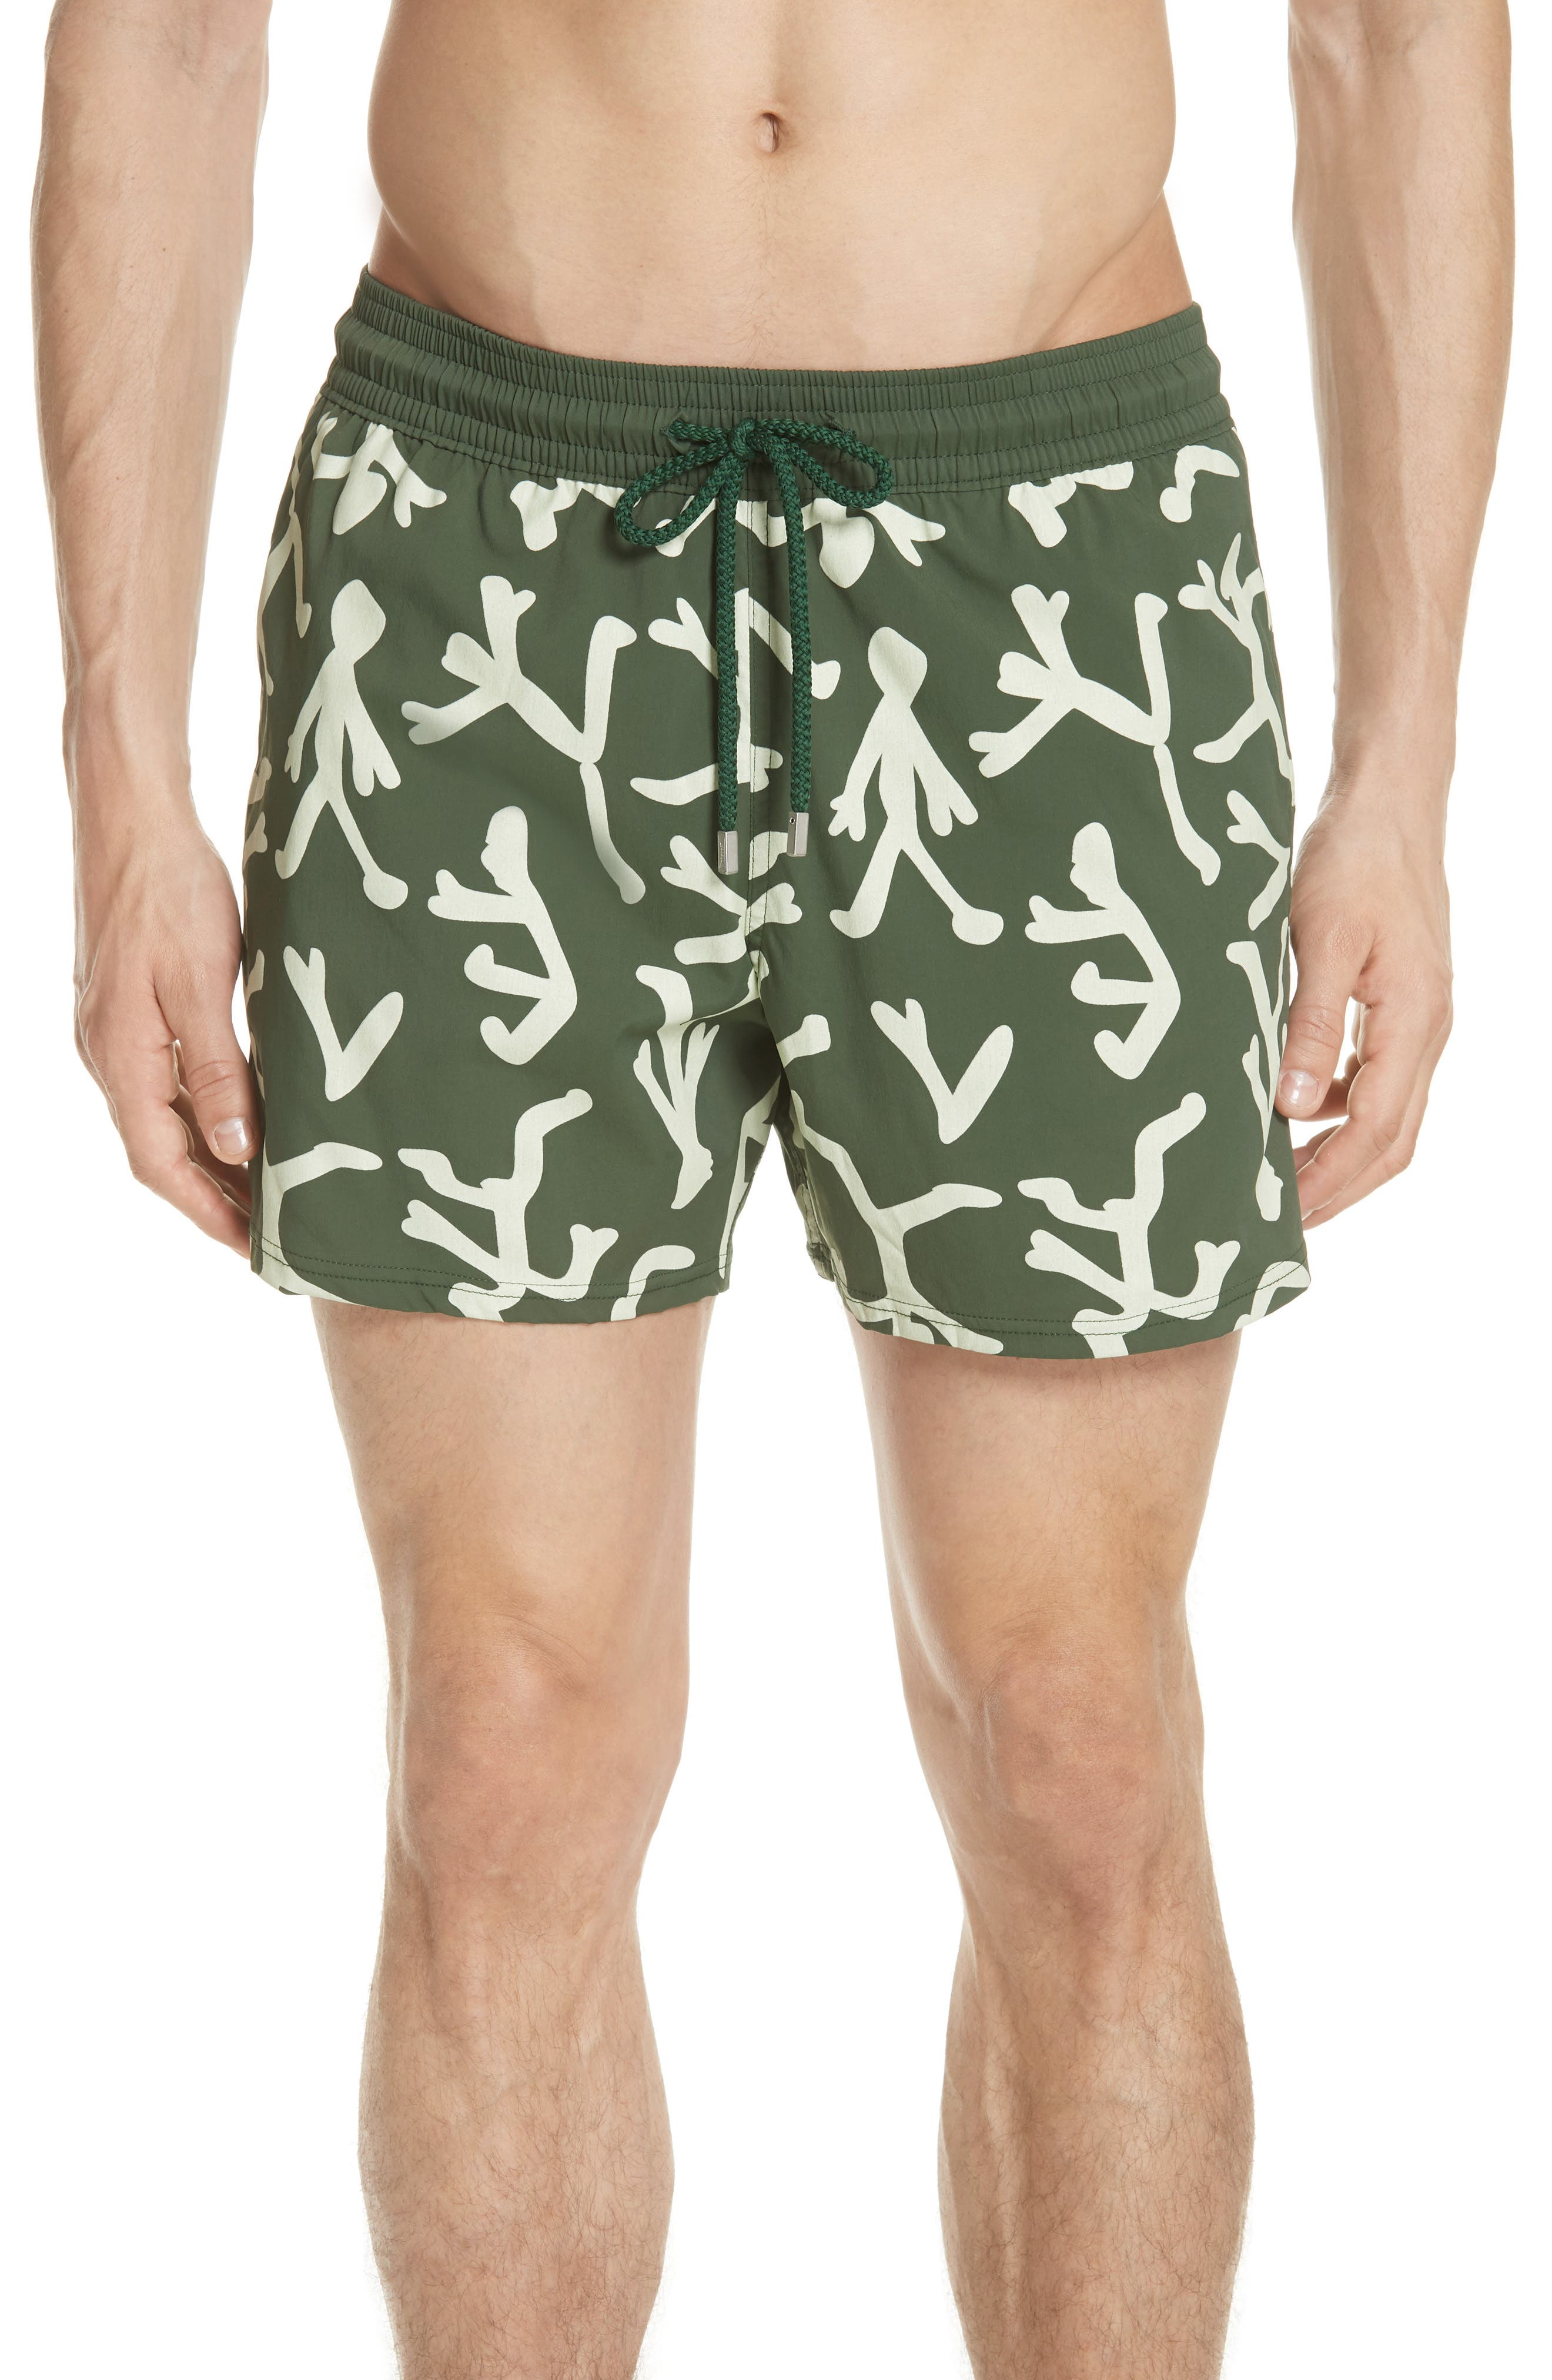 Glow in the Dark Fire Dance Swim Trunks,                             Main thumbnail 1, color,                             OLIVE